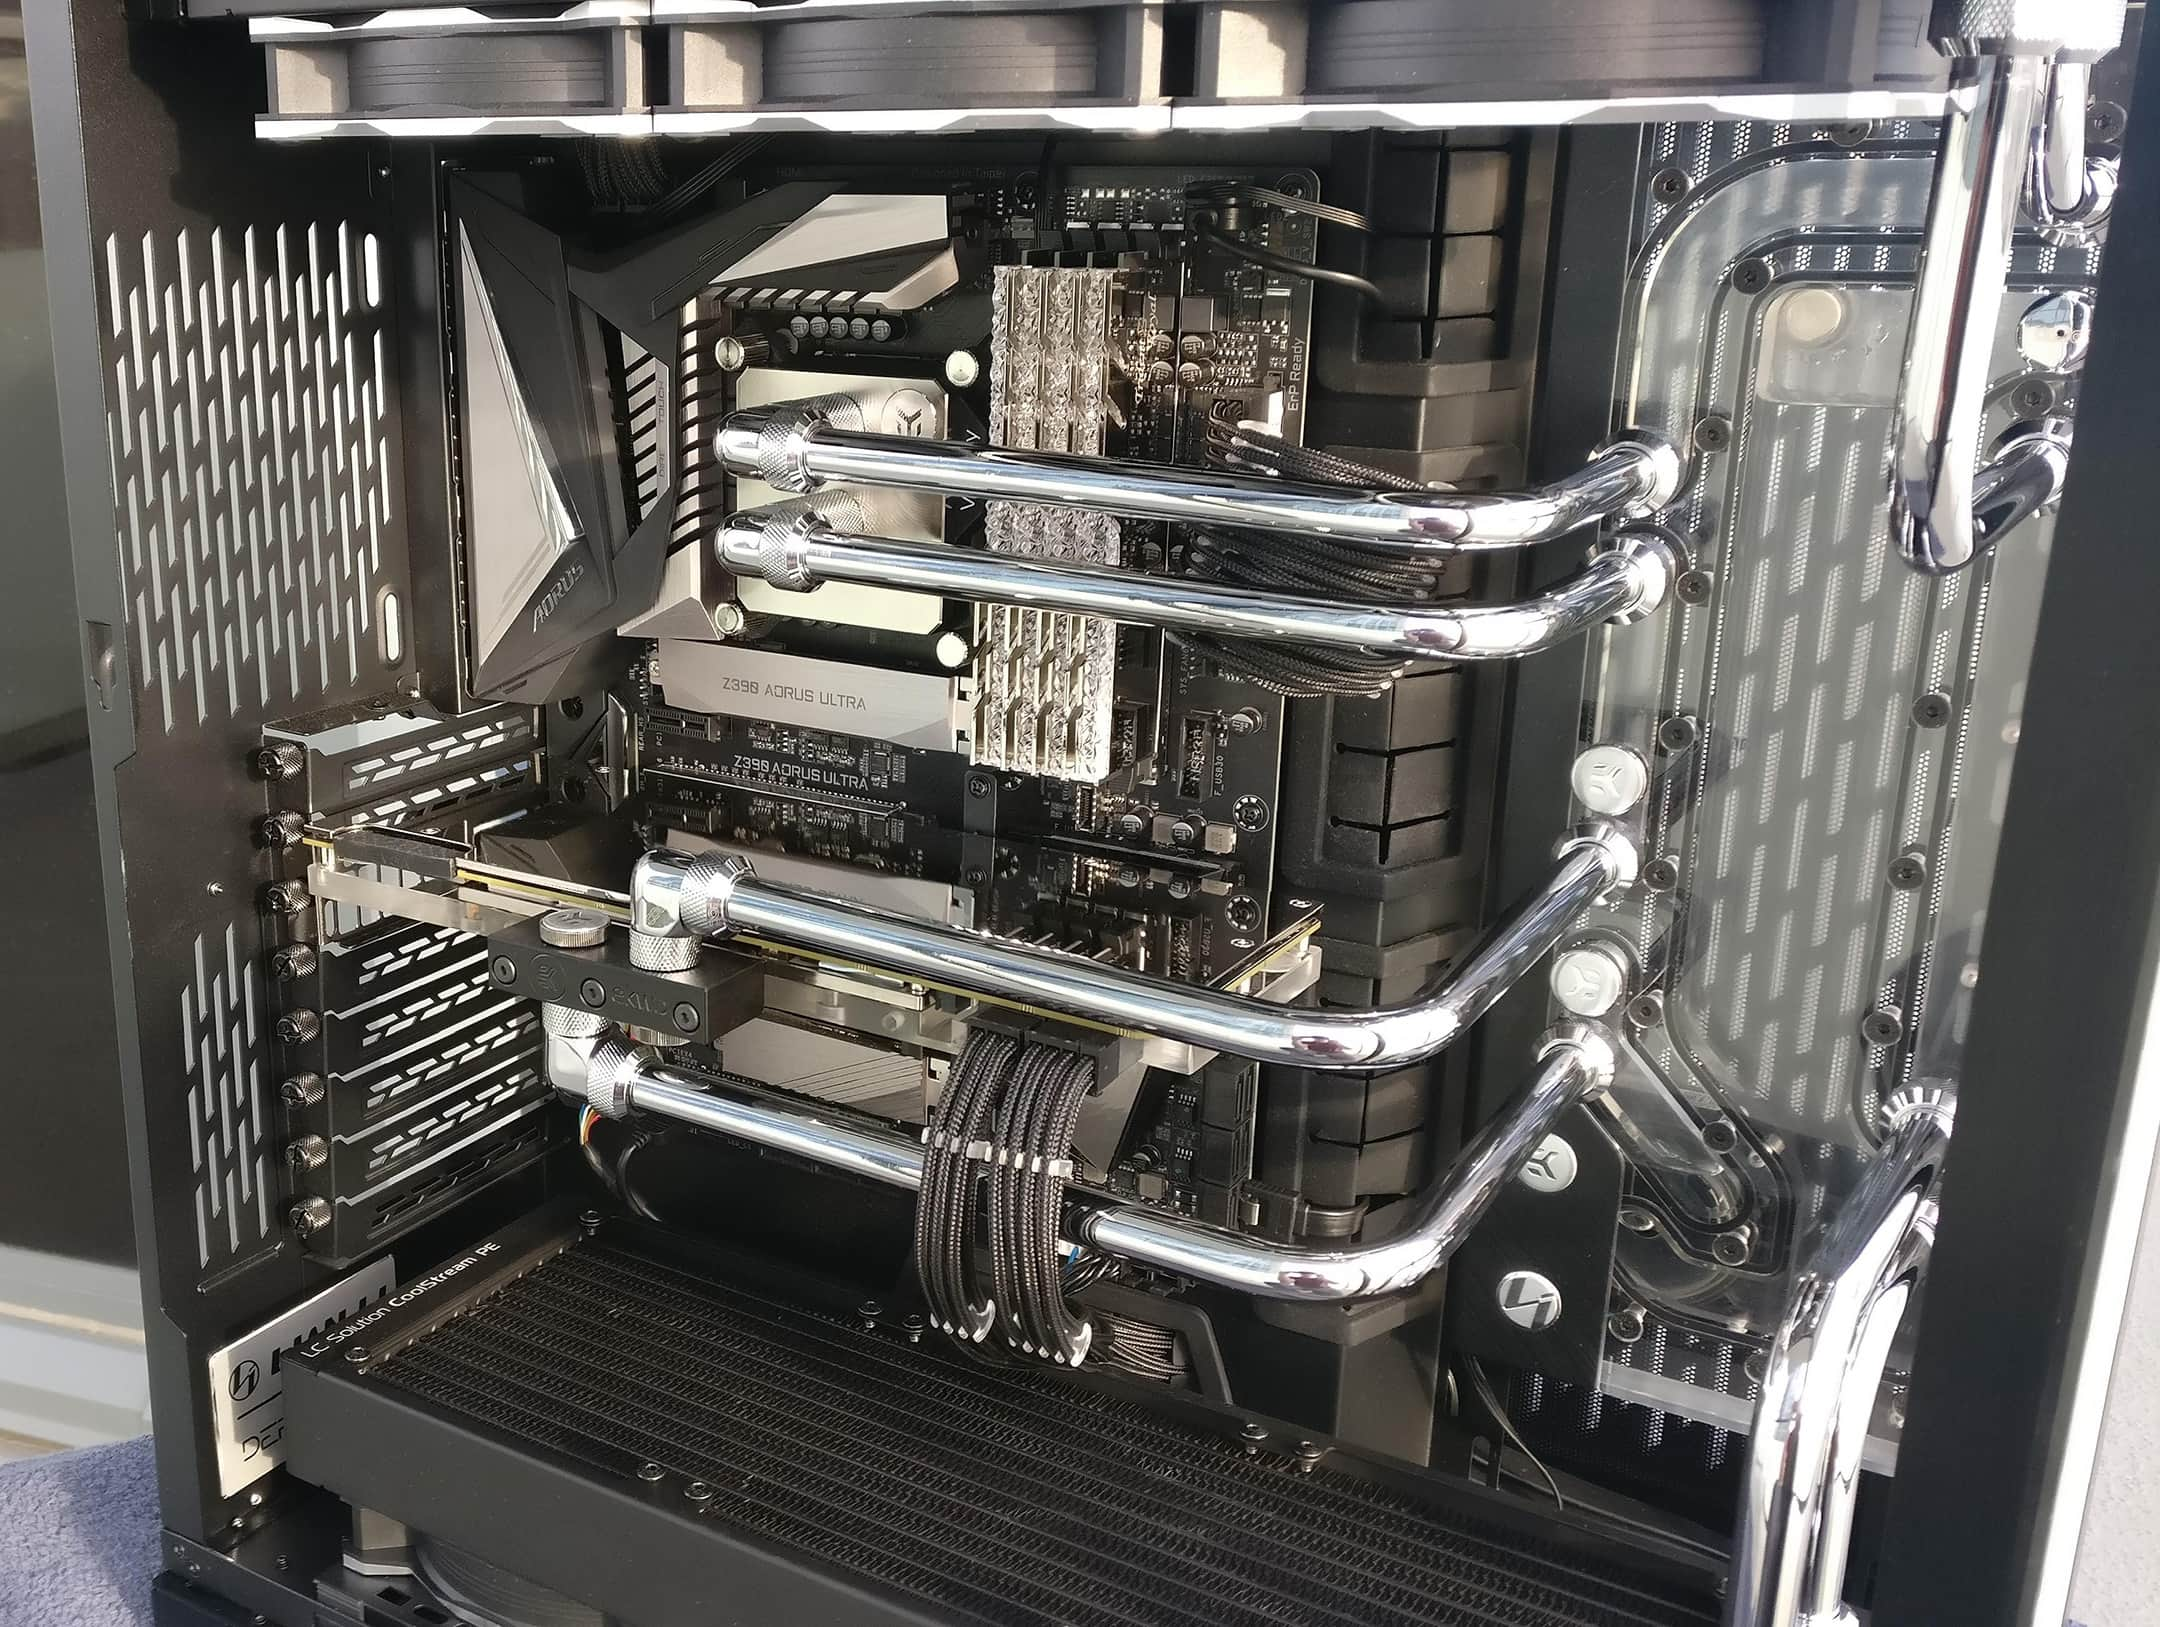 Example full tower PC case